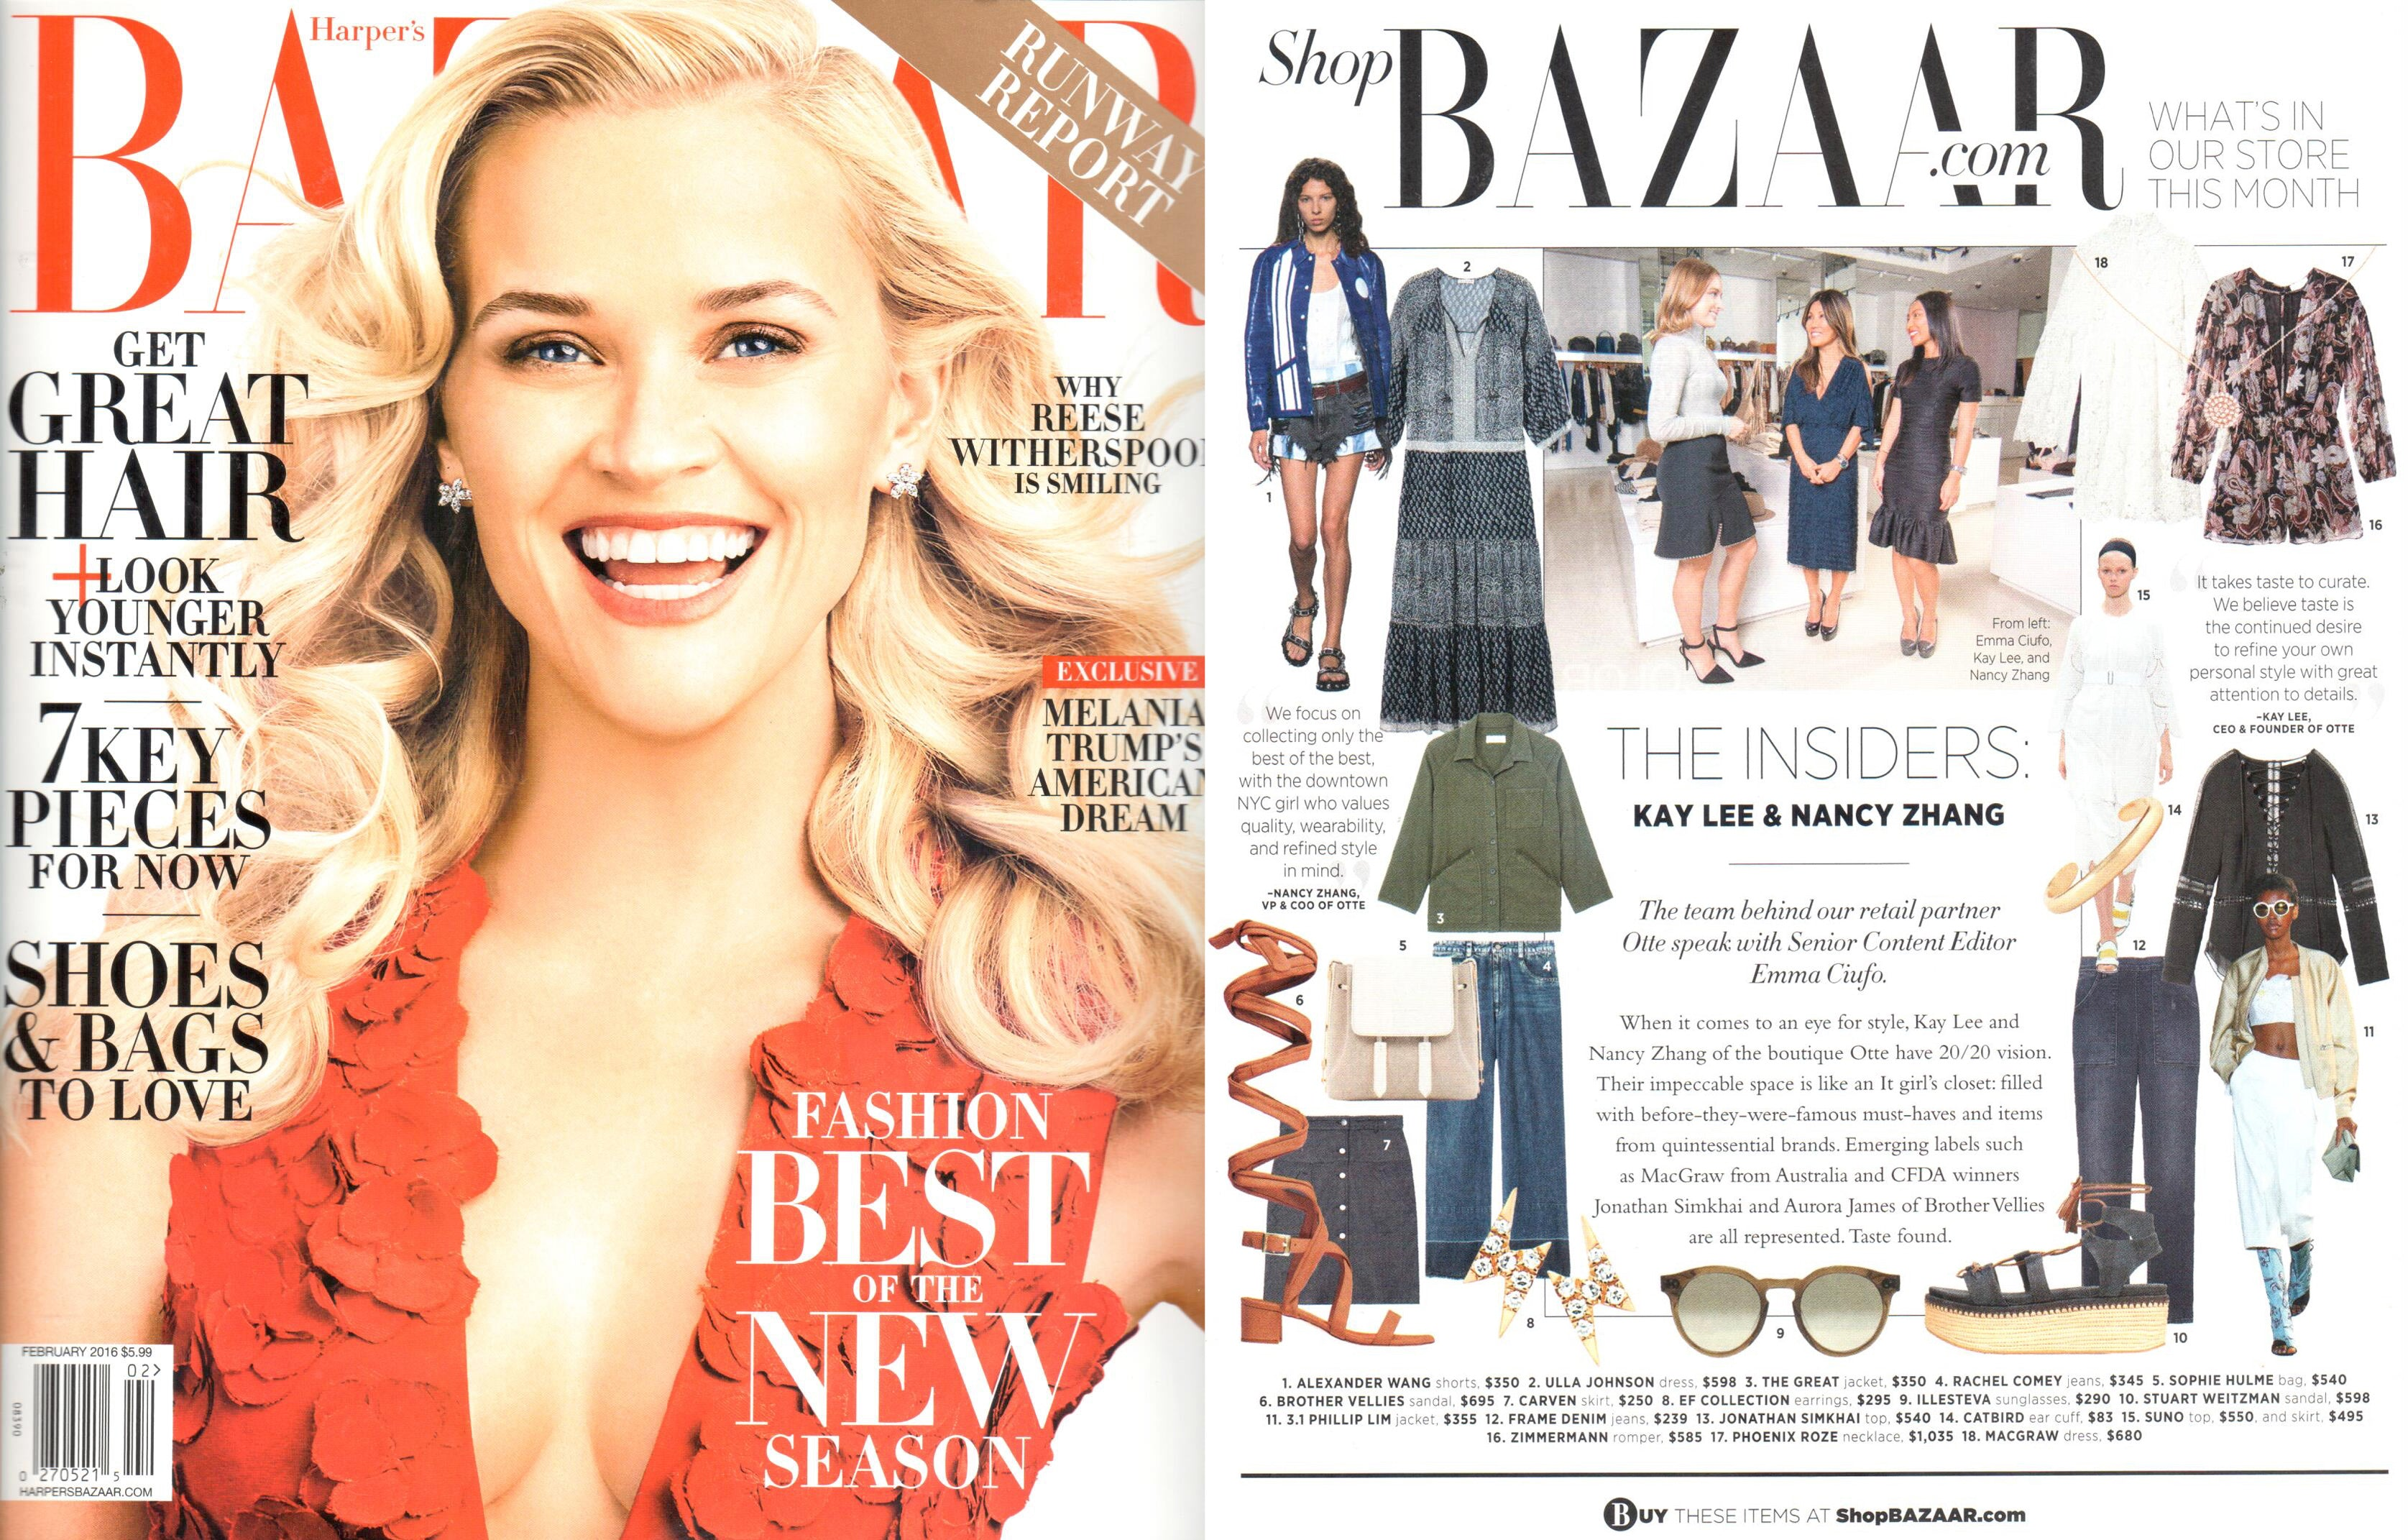 EFC Diamond Mini Lightening Bolt Studs featured in the February 2016 issue of Harper's Bazaar!